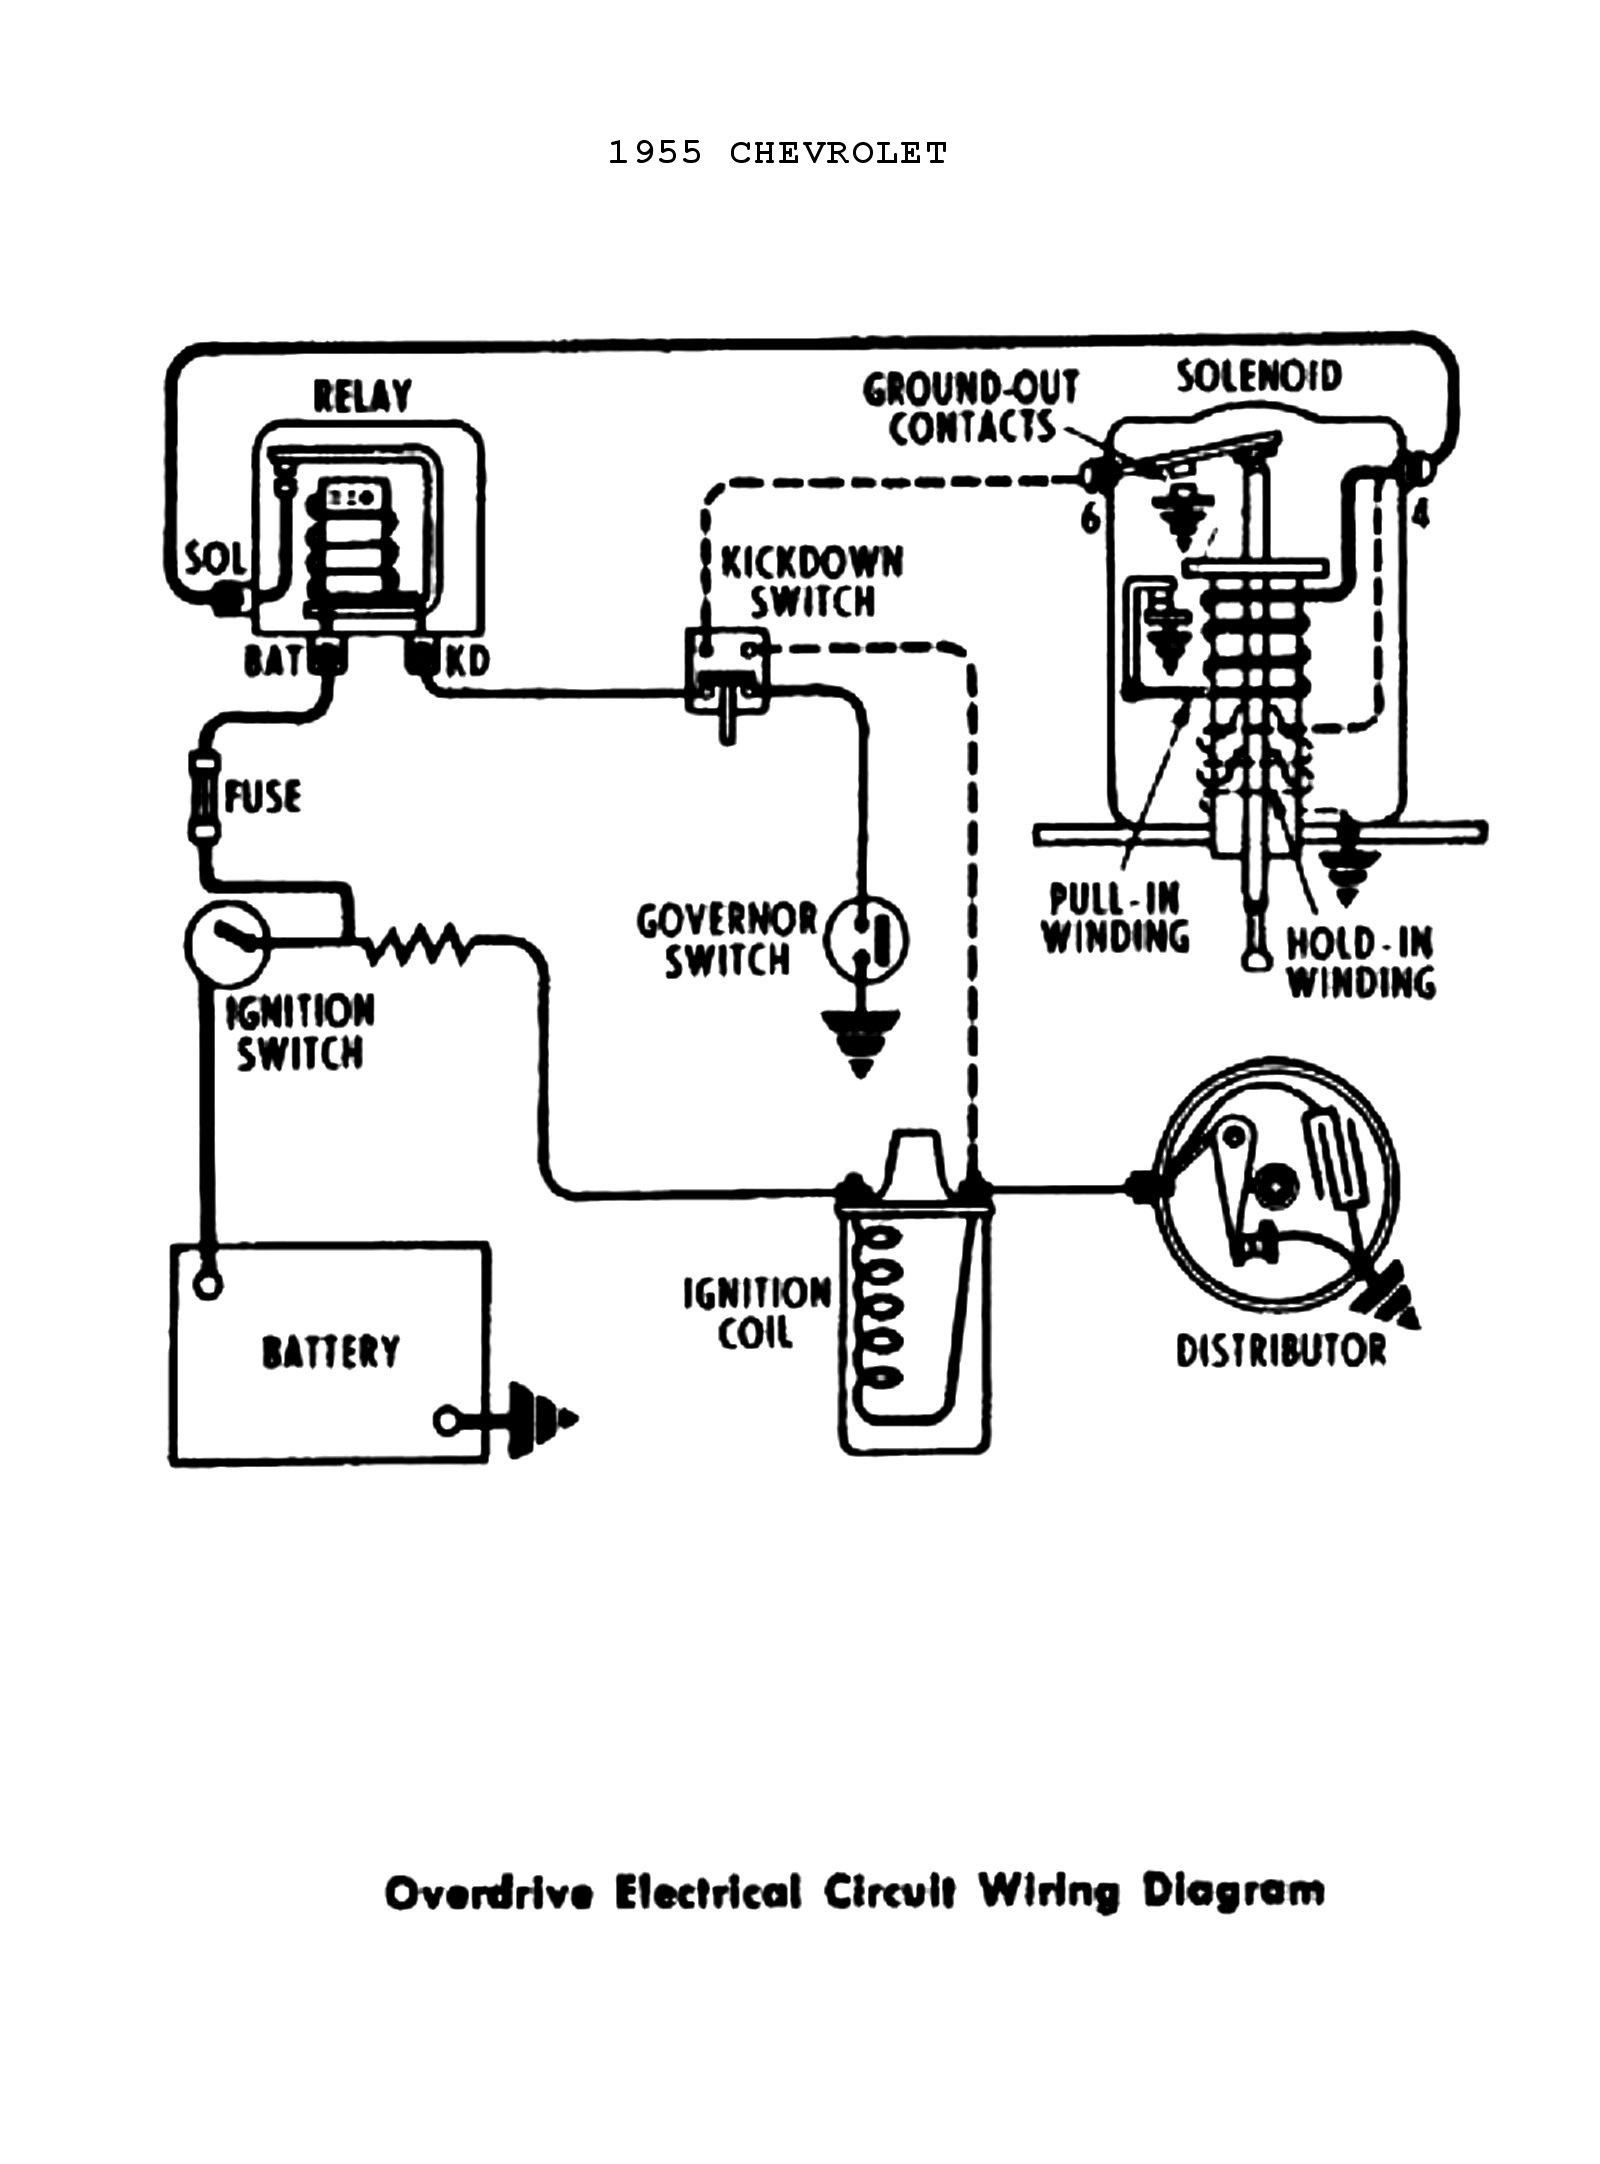 Unique Wiring Diagram For Car Door Lock Ignition Coil Ignition System Ignite